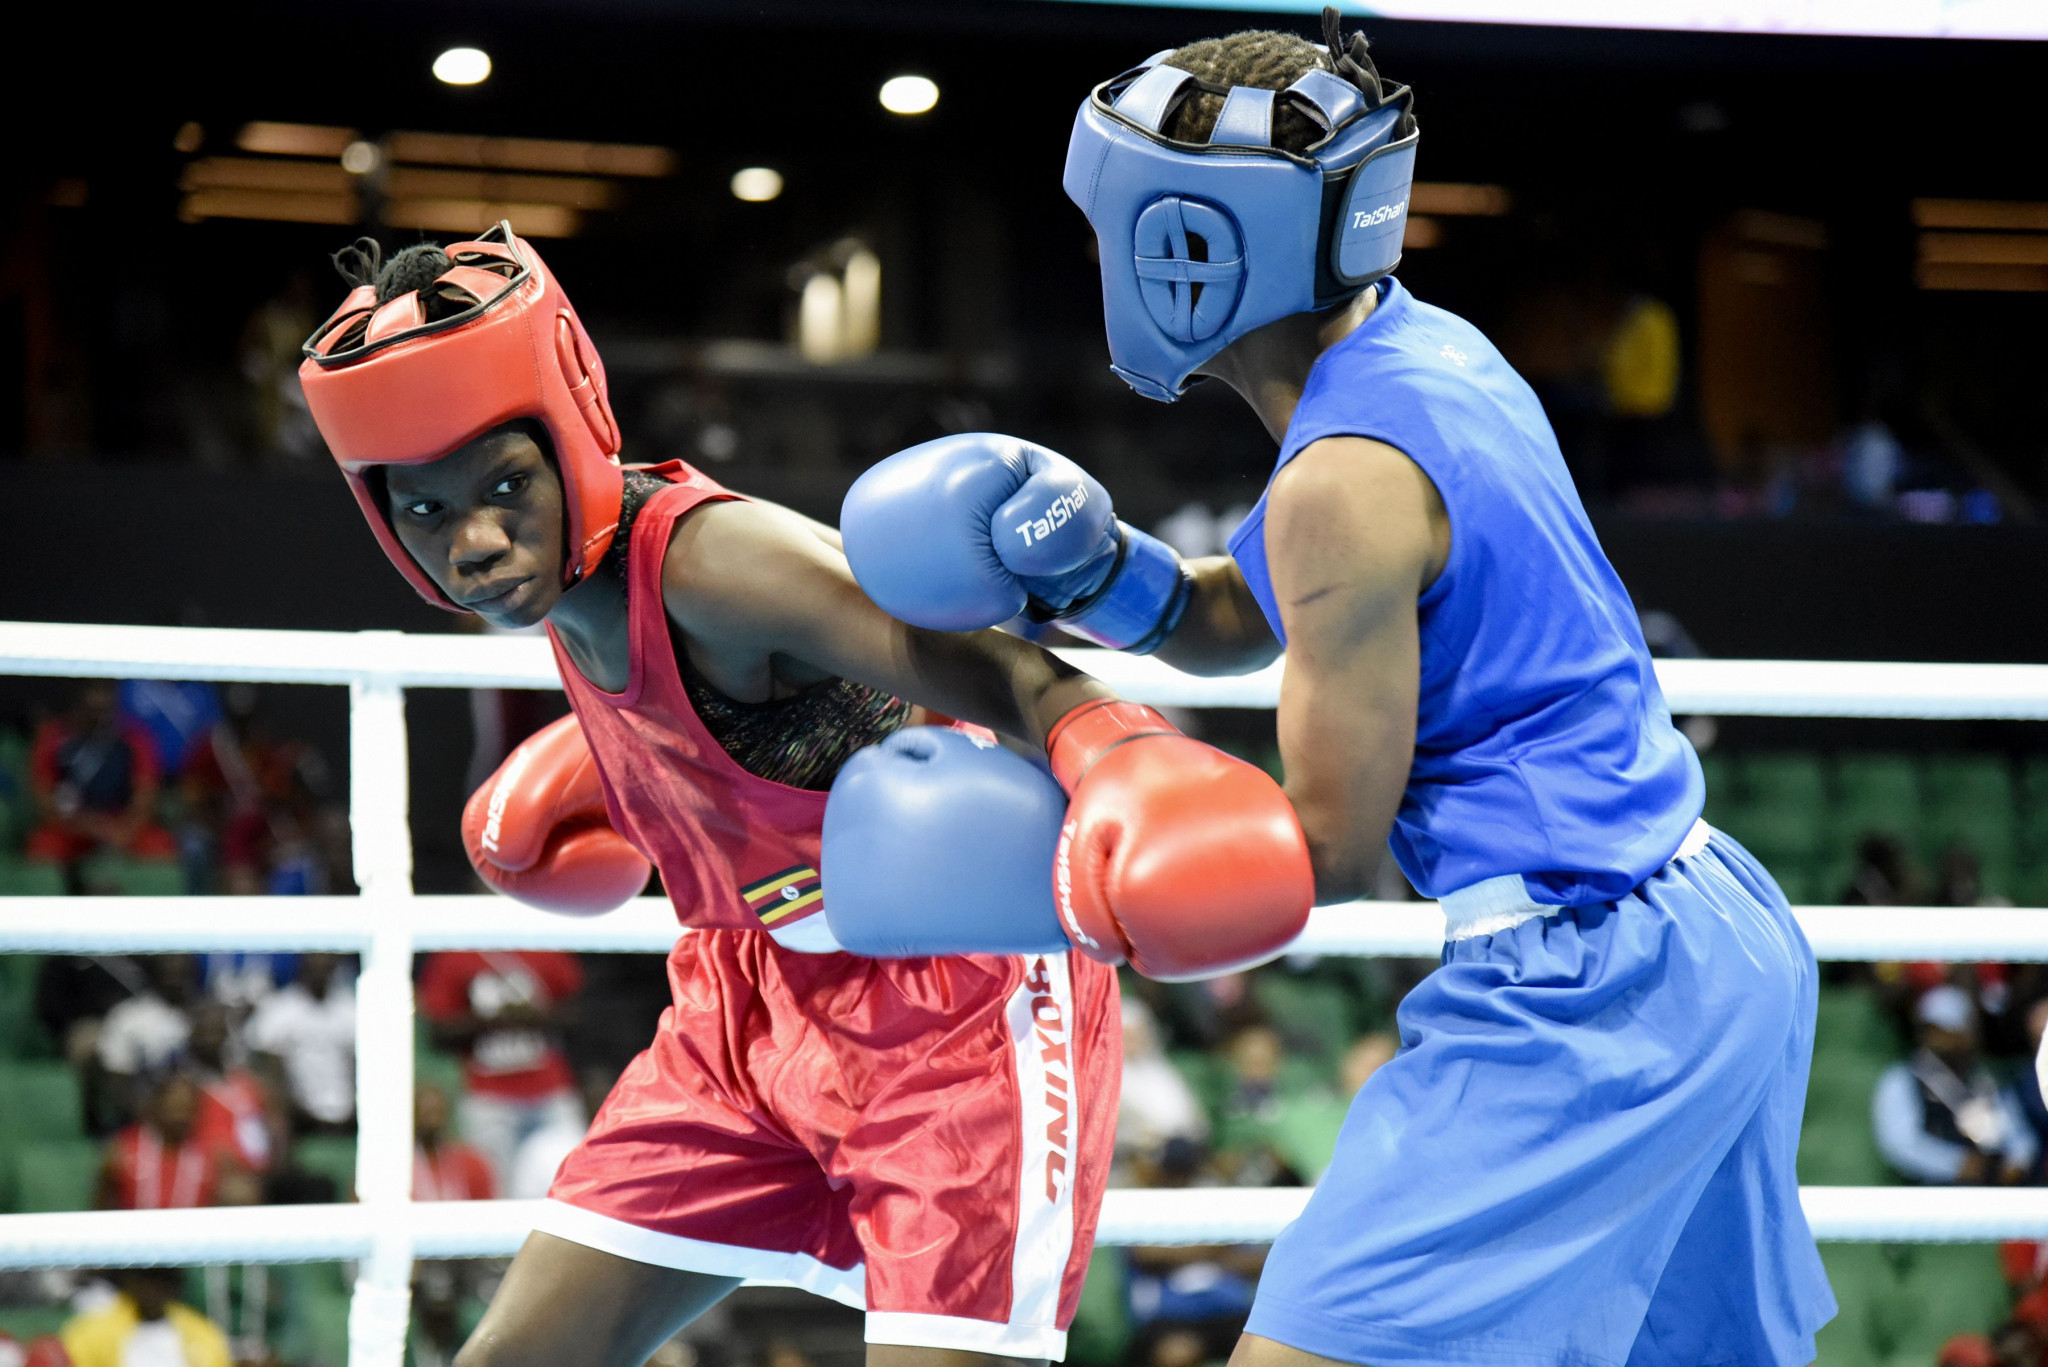 Boxers from Africa can no longer reach the Olympics through a last-chance world qualifier, and must instead hope to advance thanks to Boxing Task Force rankings ©Getty Images